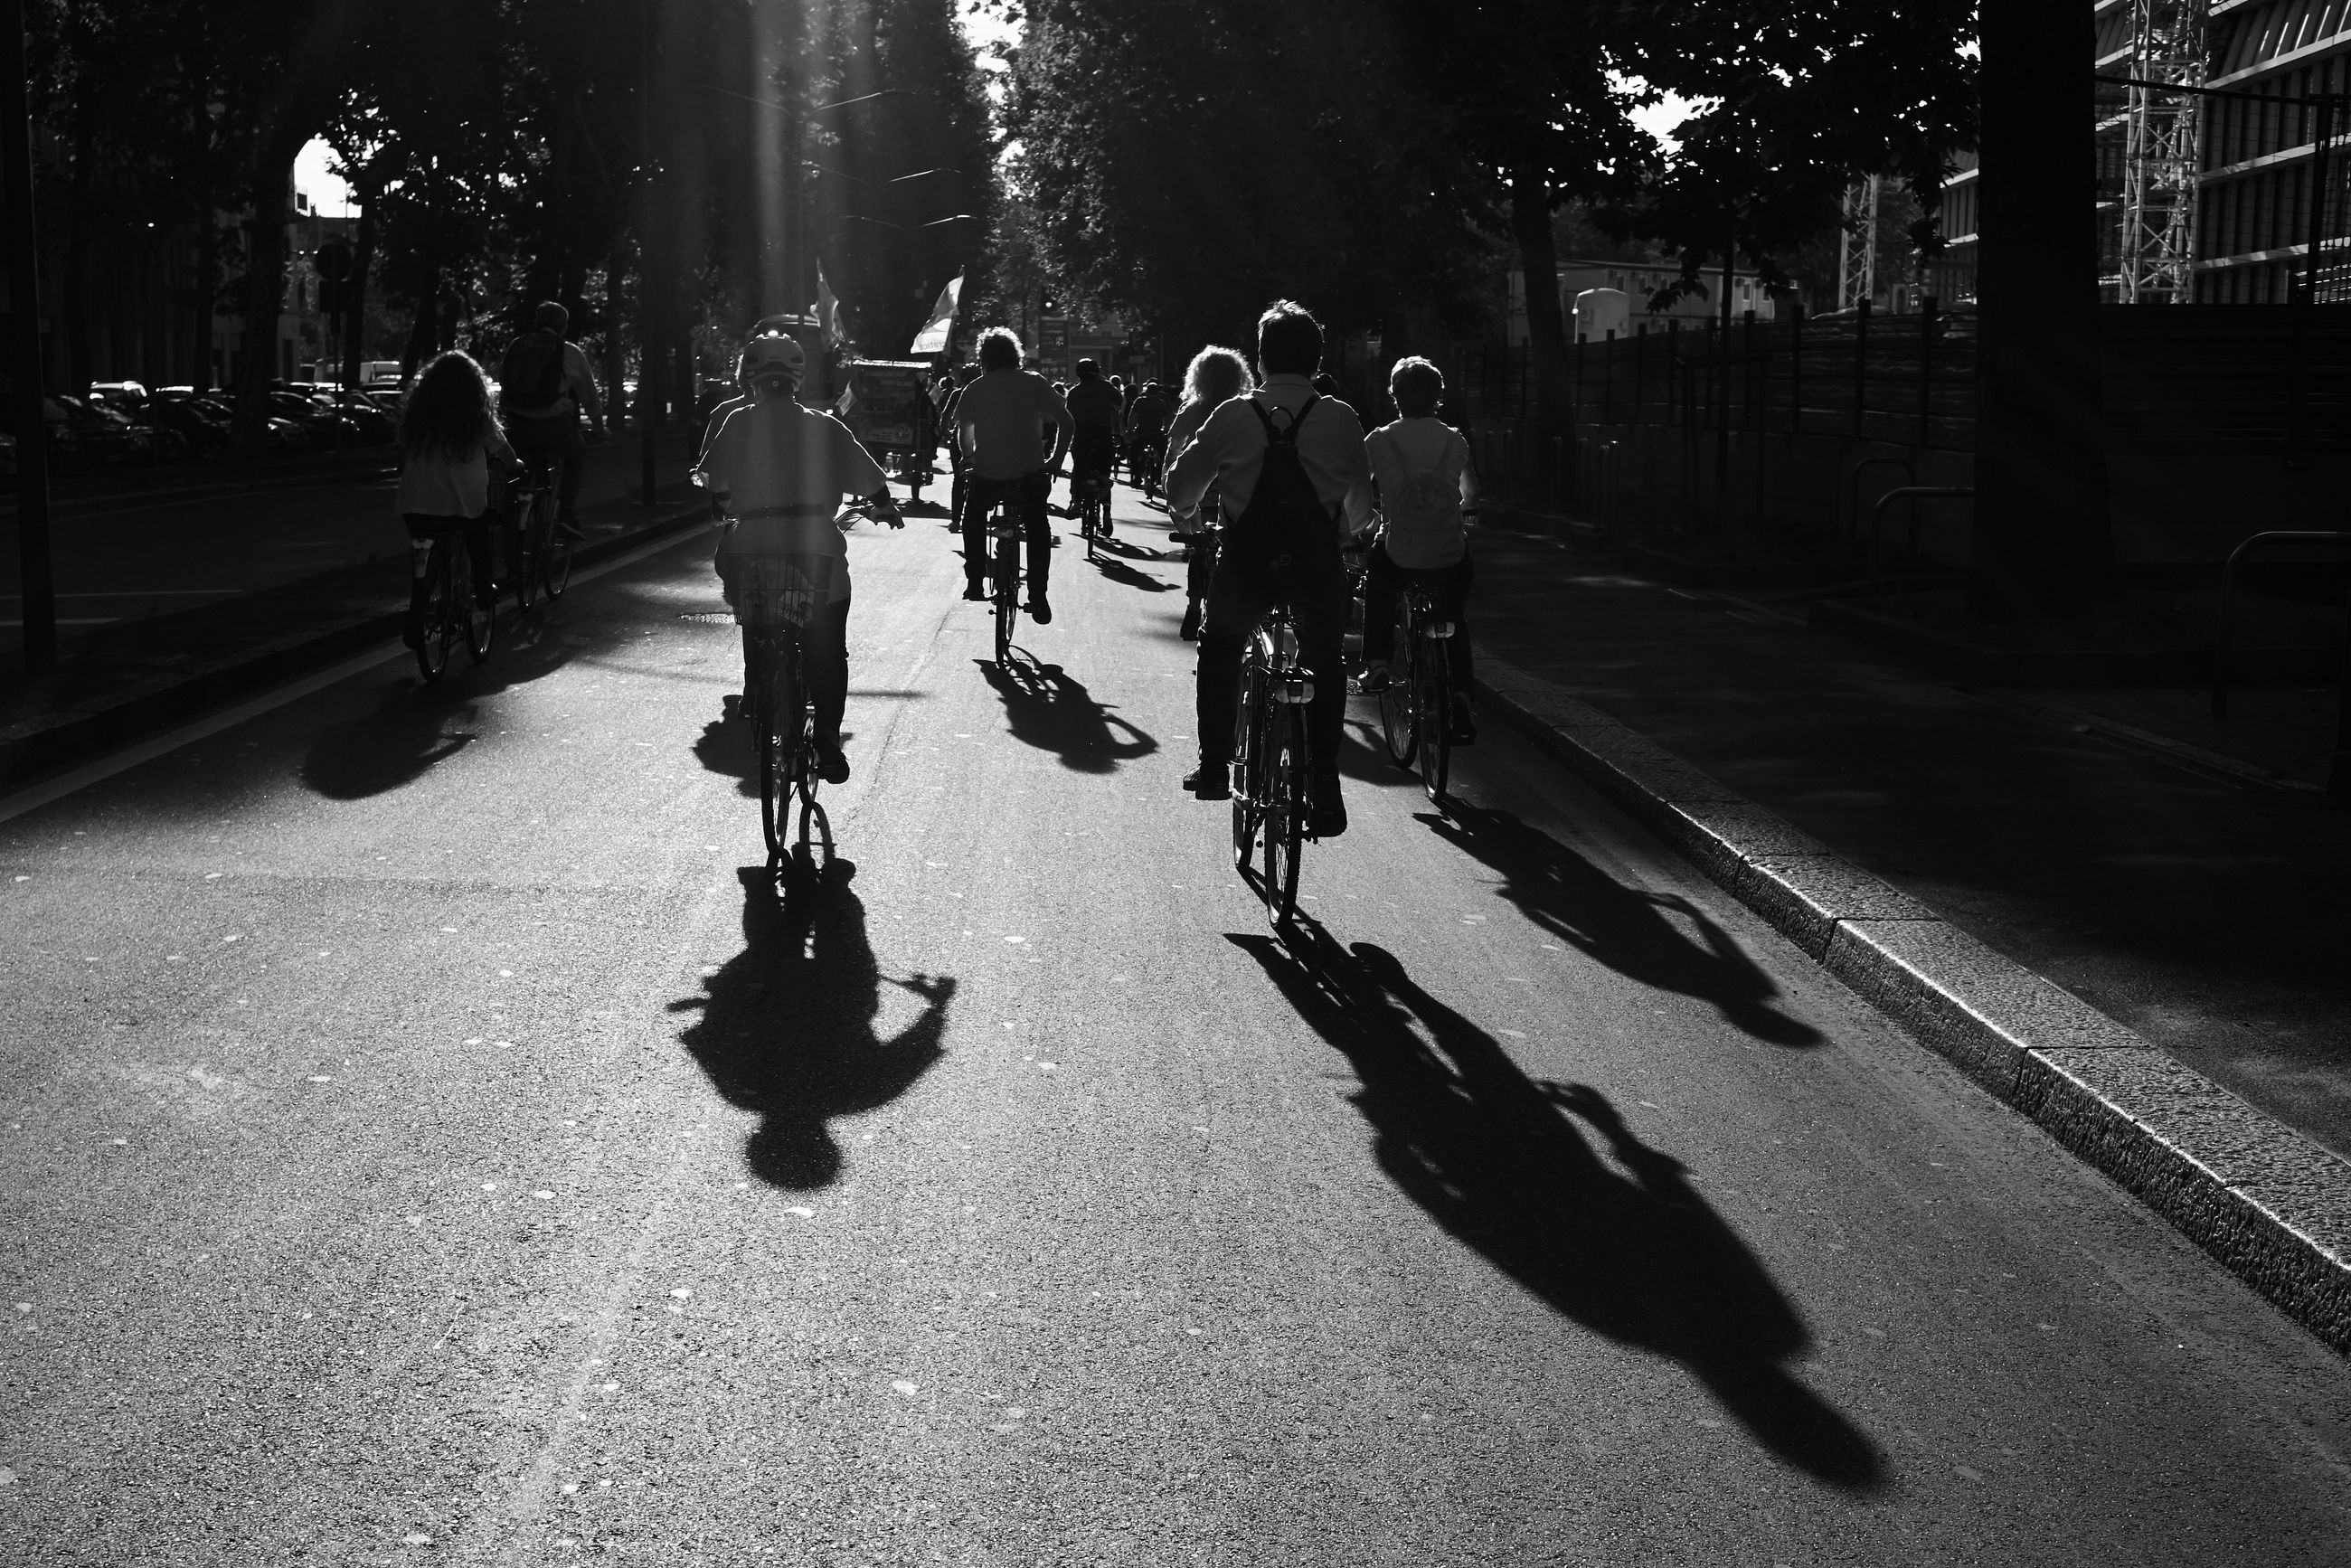 shadow, real people, city, men, night, large group of people, outdoors, people, tree, adults only, only men, adult